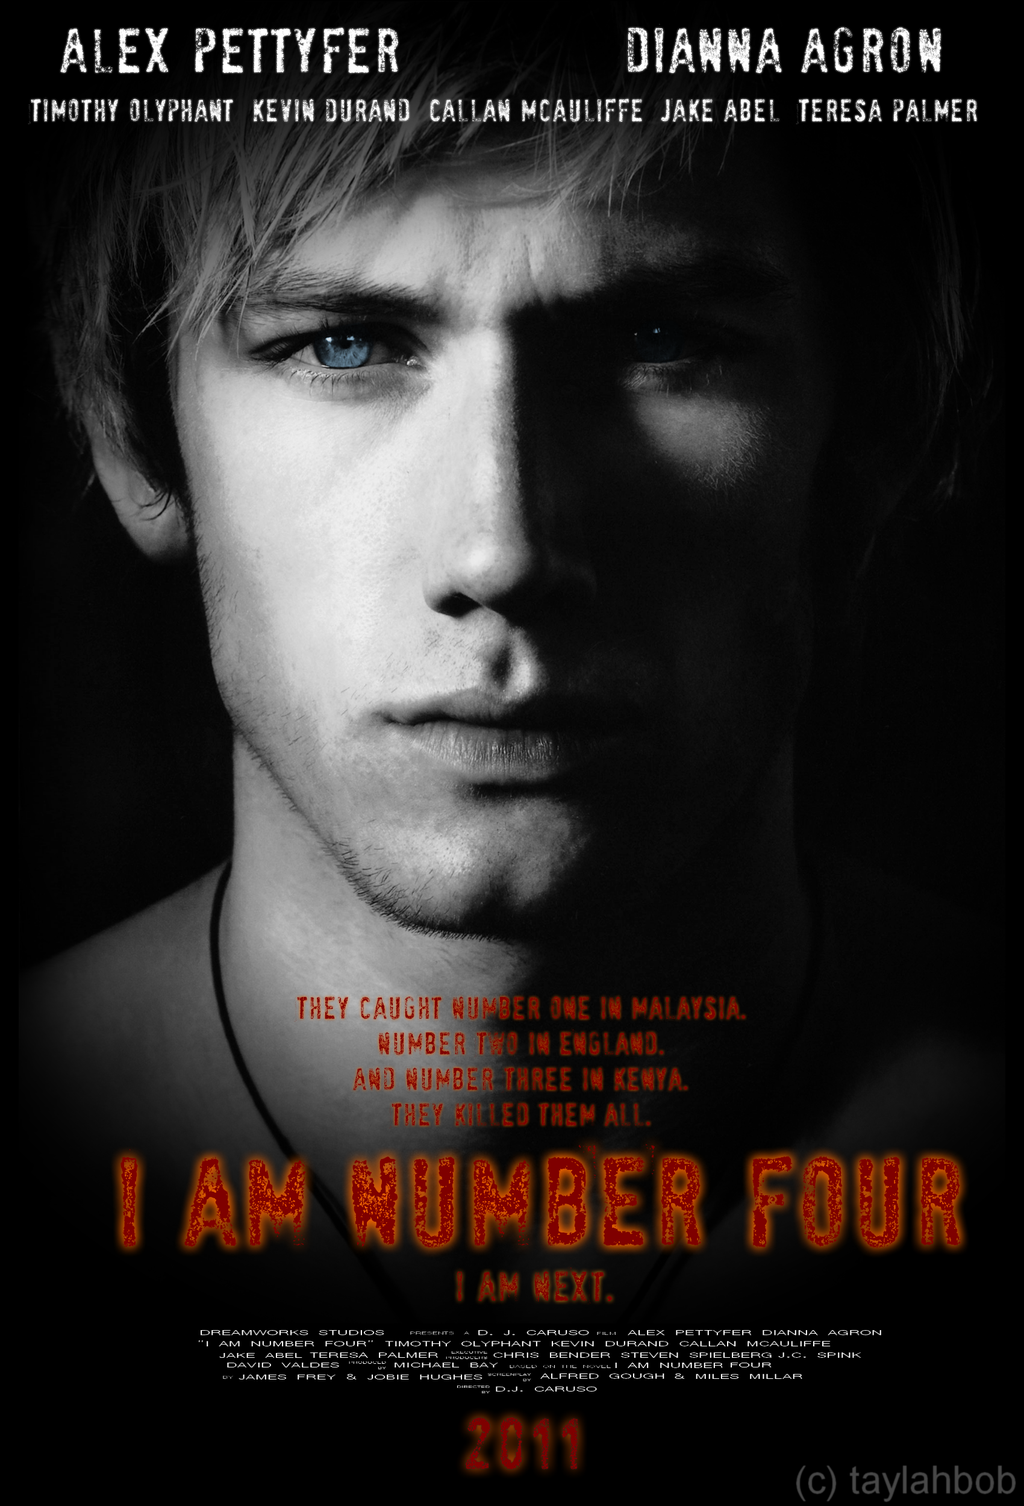 http://2.bp.blogspot.com/-Wvx6Ur22K5g/TWtRyYfzUWI/AAAAAAAAAJM/T1mQwHrw0R0/s1600/Watch-I-Am-Number-Four-Movie-Online.png